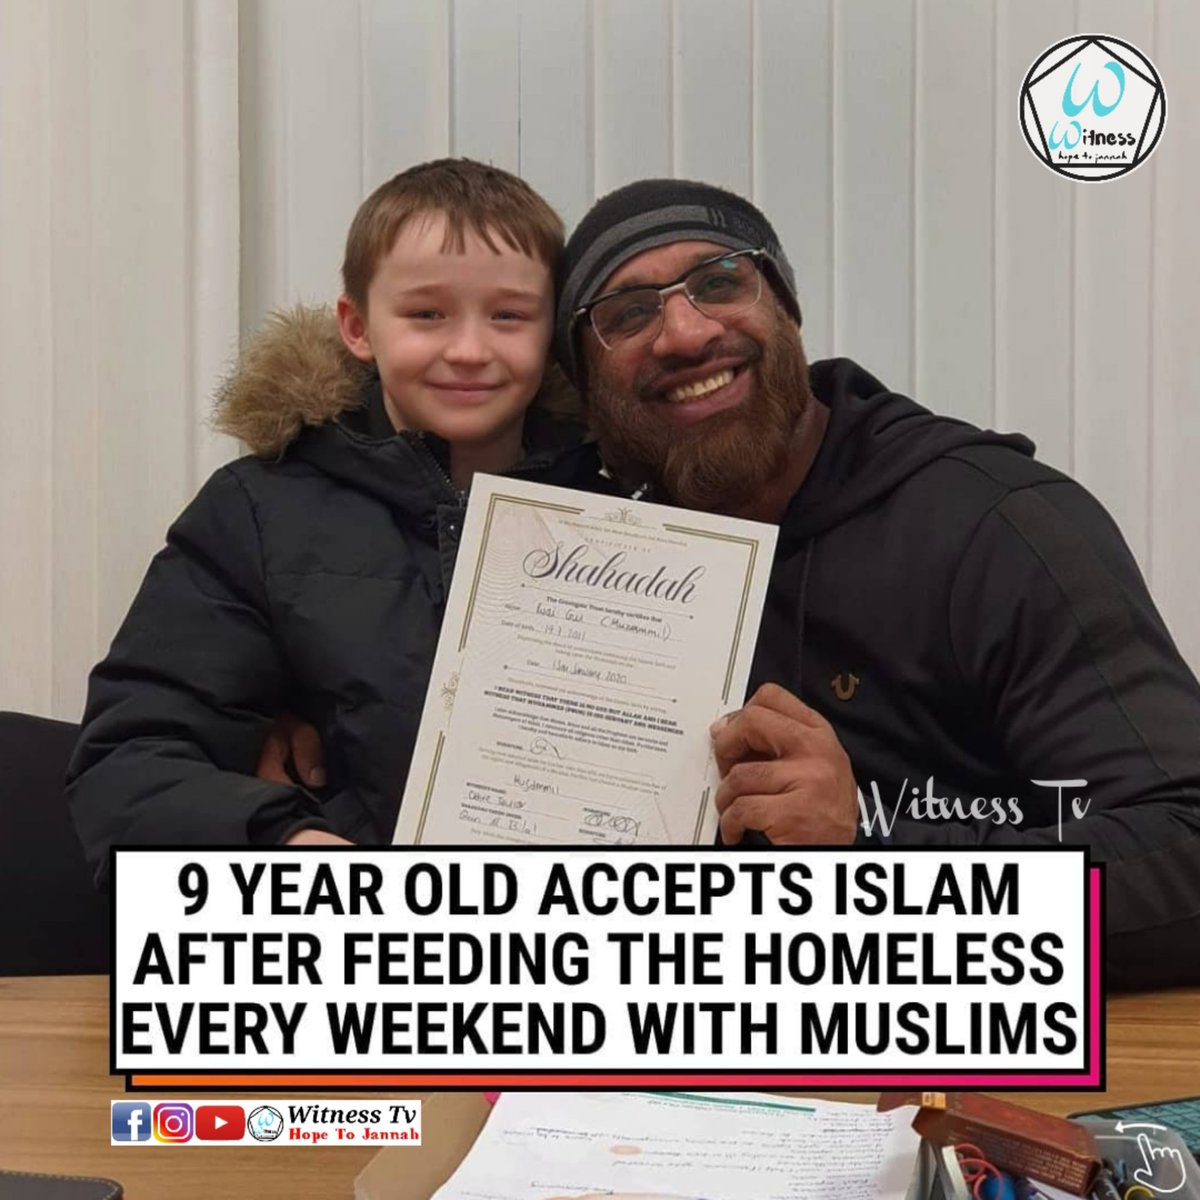 9 YEAR OLD ACCEPTS ISLAM AFTER FEEDING THE HOMELESS EVERY WEEKEND WITH MUSLIMS💚👇 https://t.co/SRohXbx8lG  #uk #uknews #news #breakingnews #globalnews #global #hr #un #trending #convert #revert #charity #love #peace #humanity #humanrights #muslim #islam #islamicnews #muslimnews https://t.co/XEgvtRX6Bs